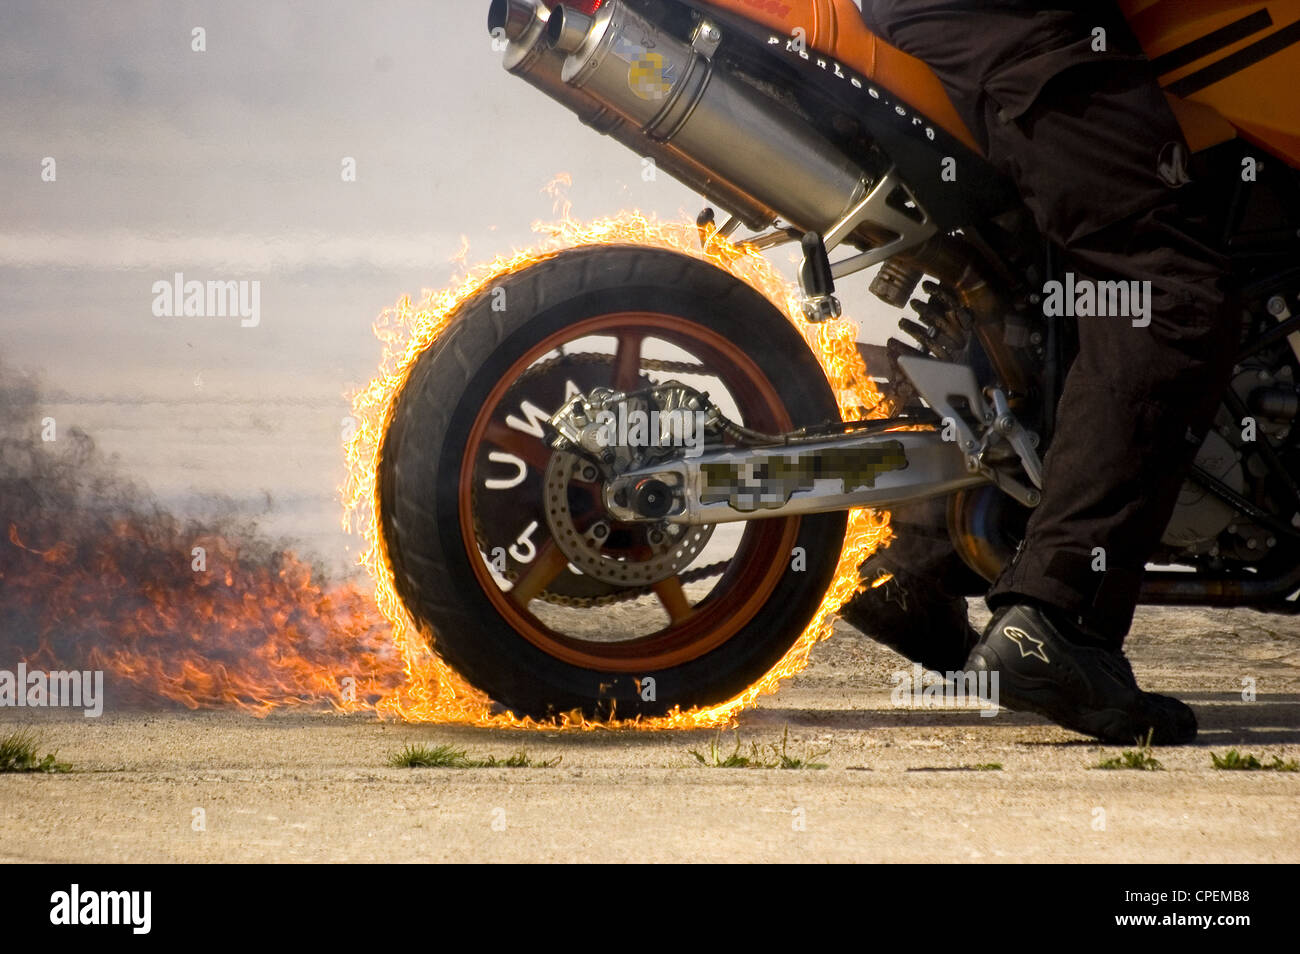 Unusual burnout by a modern and powerful motorcycle. - Stock Image